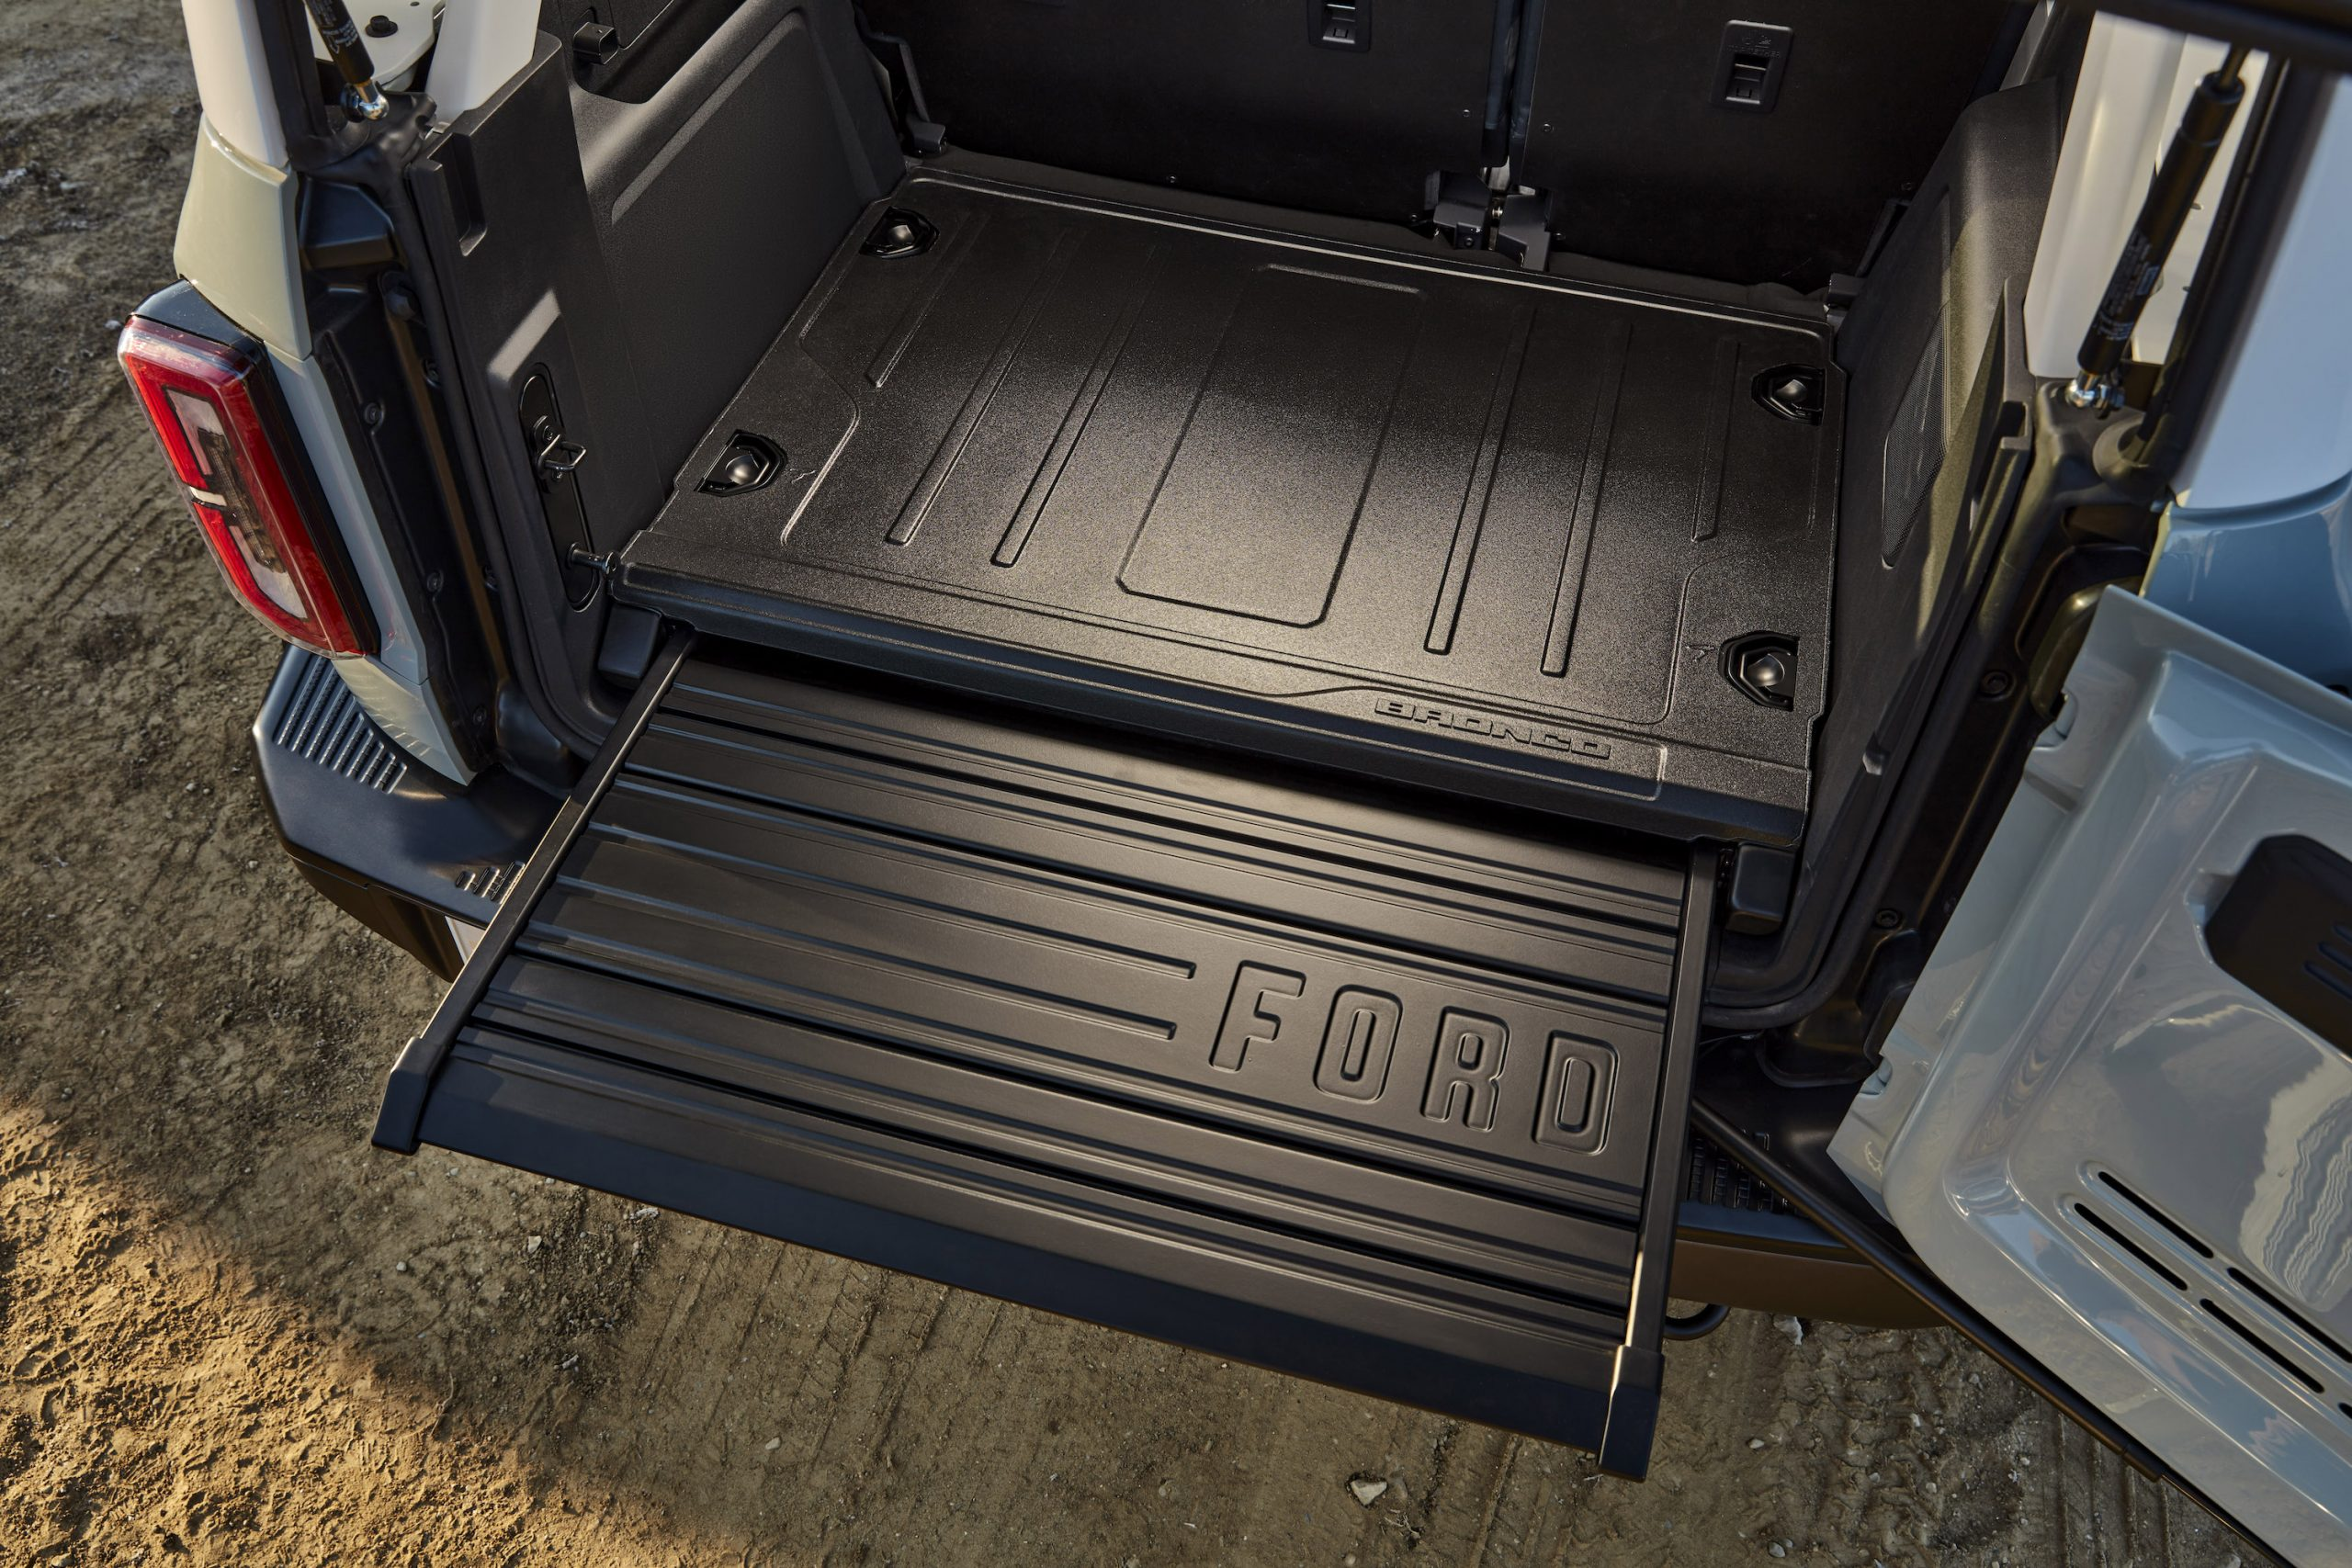 2021 Ford Bronco Four Door Open Tailgate